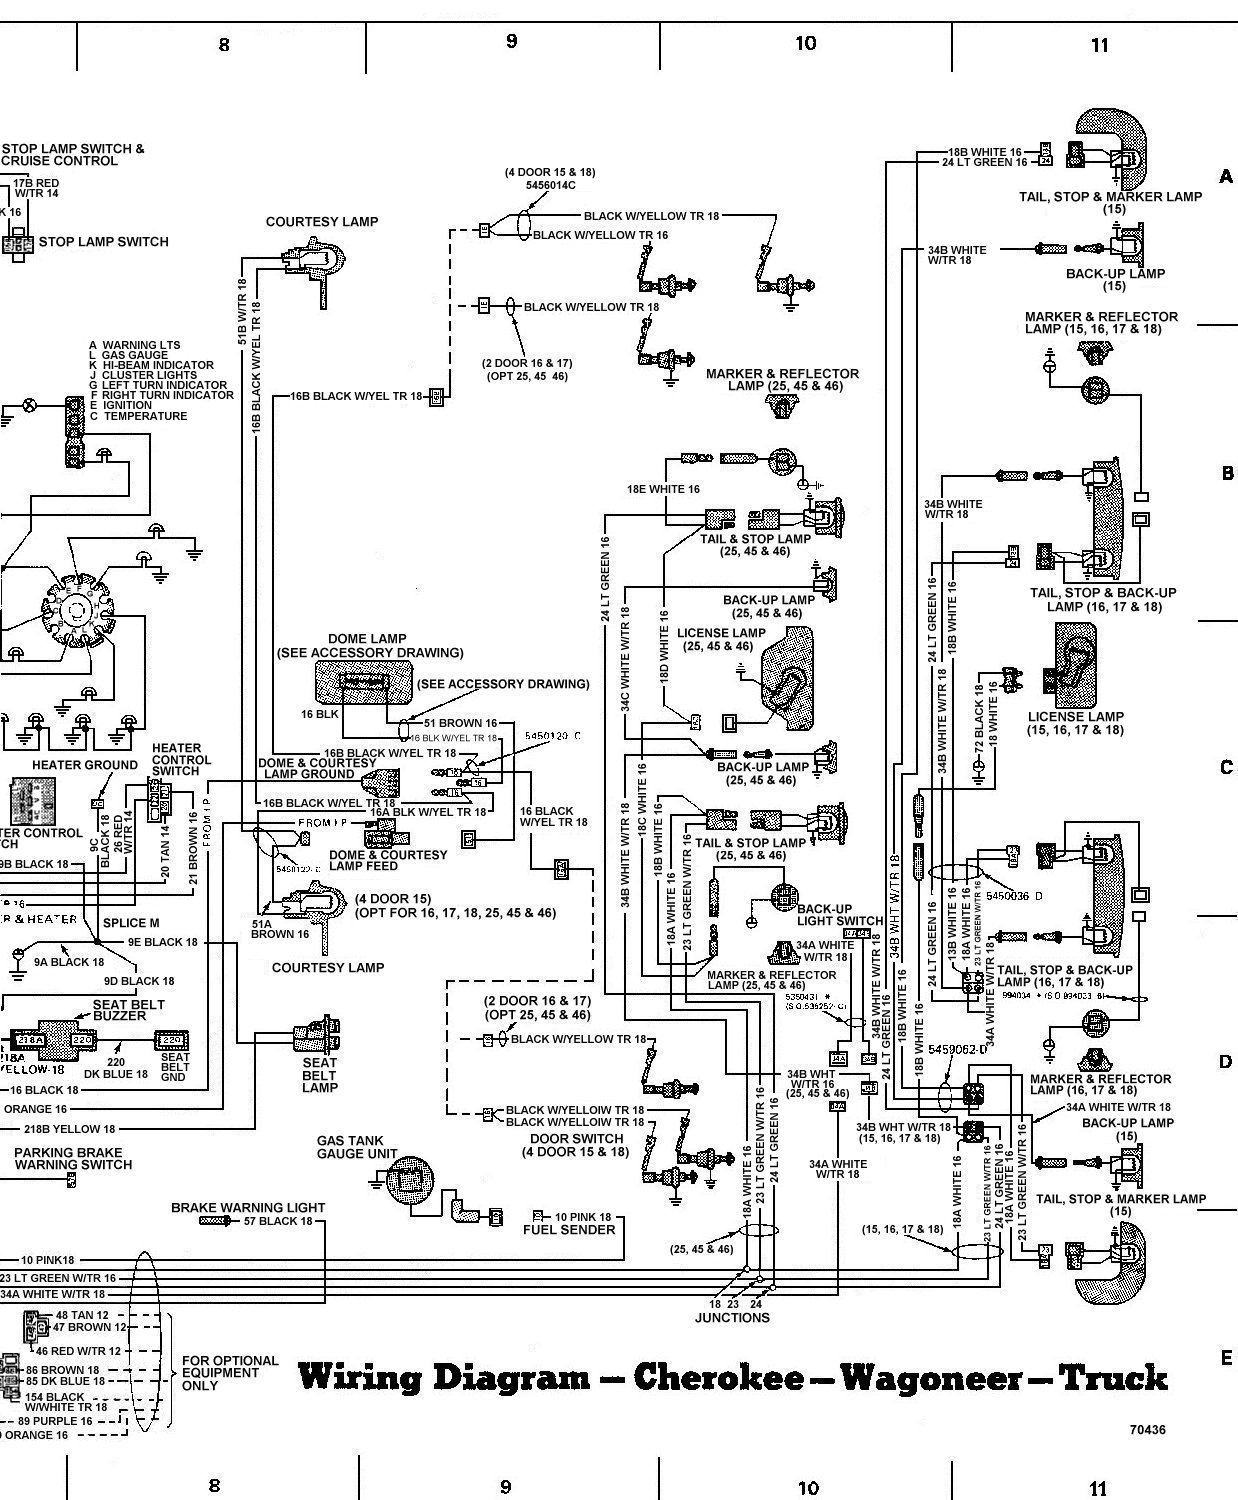 tom oljeep collins fsj wiring page rh oljeep com wiring diagram for 1998 jeep cherokee pcm wiring diagram for 1998 jeep cherokee lt